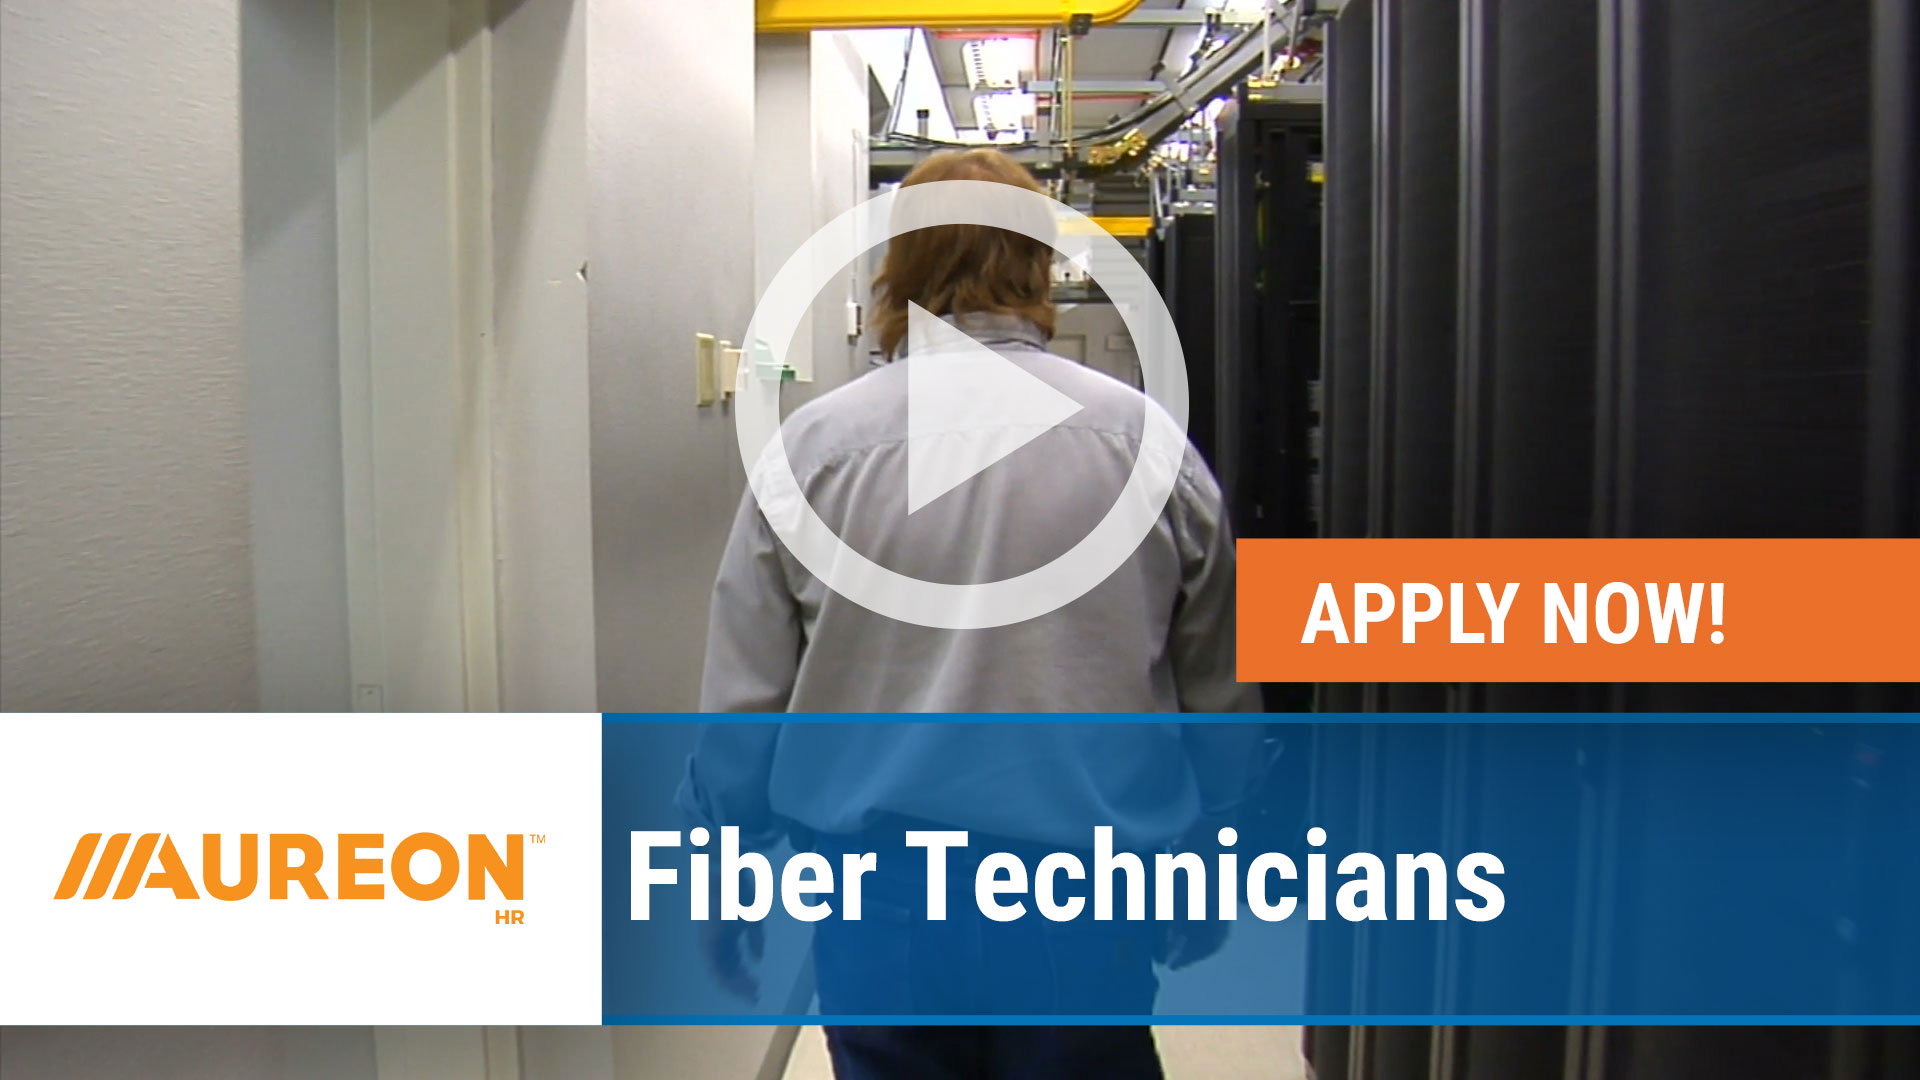 Watch our careers video for available job opening Fiber Technicians in Des Moines, IA